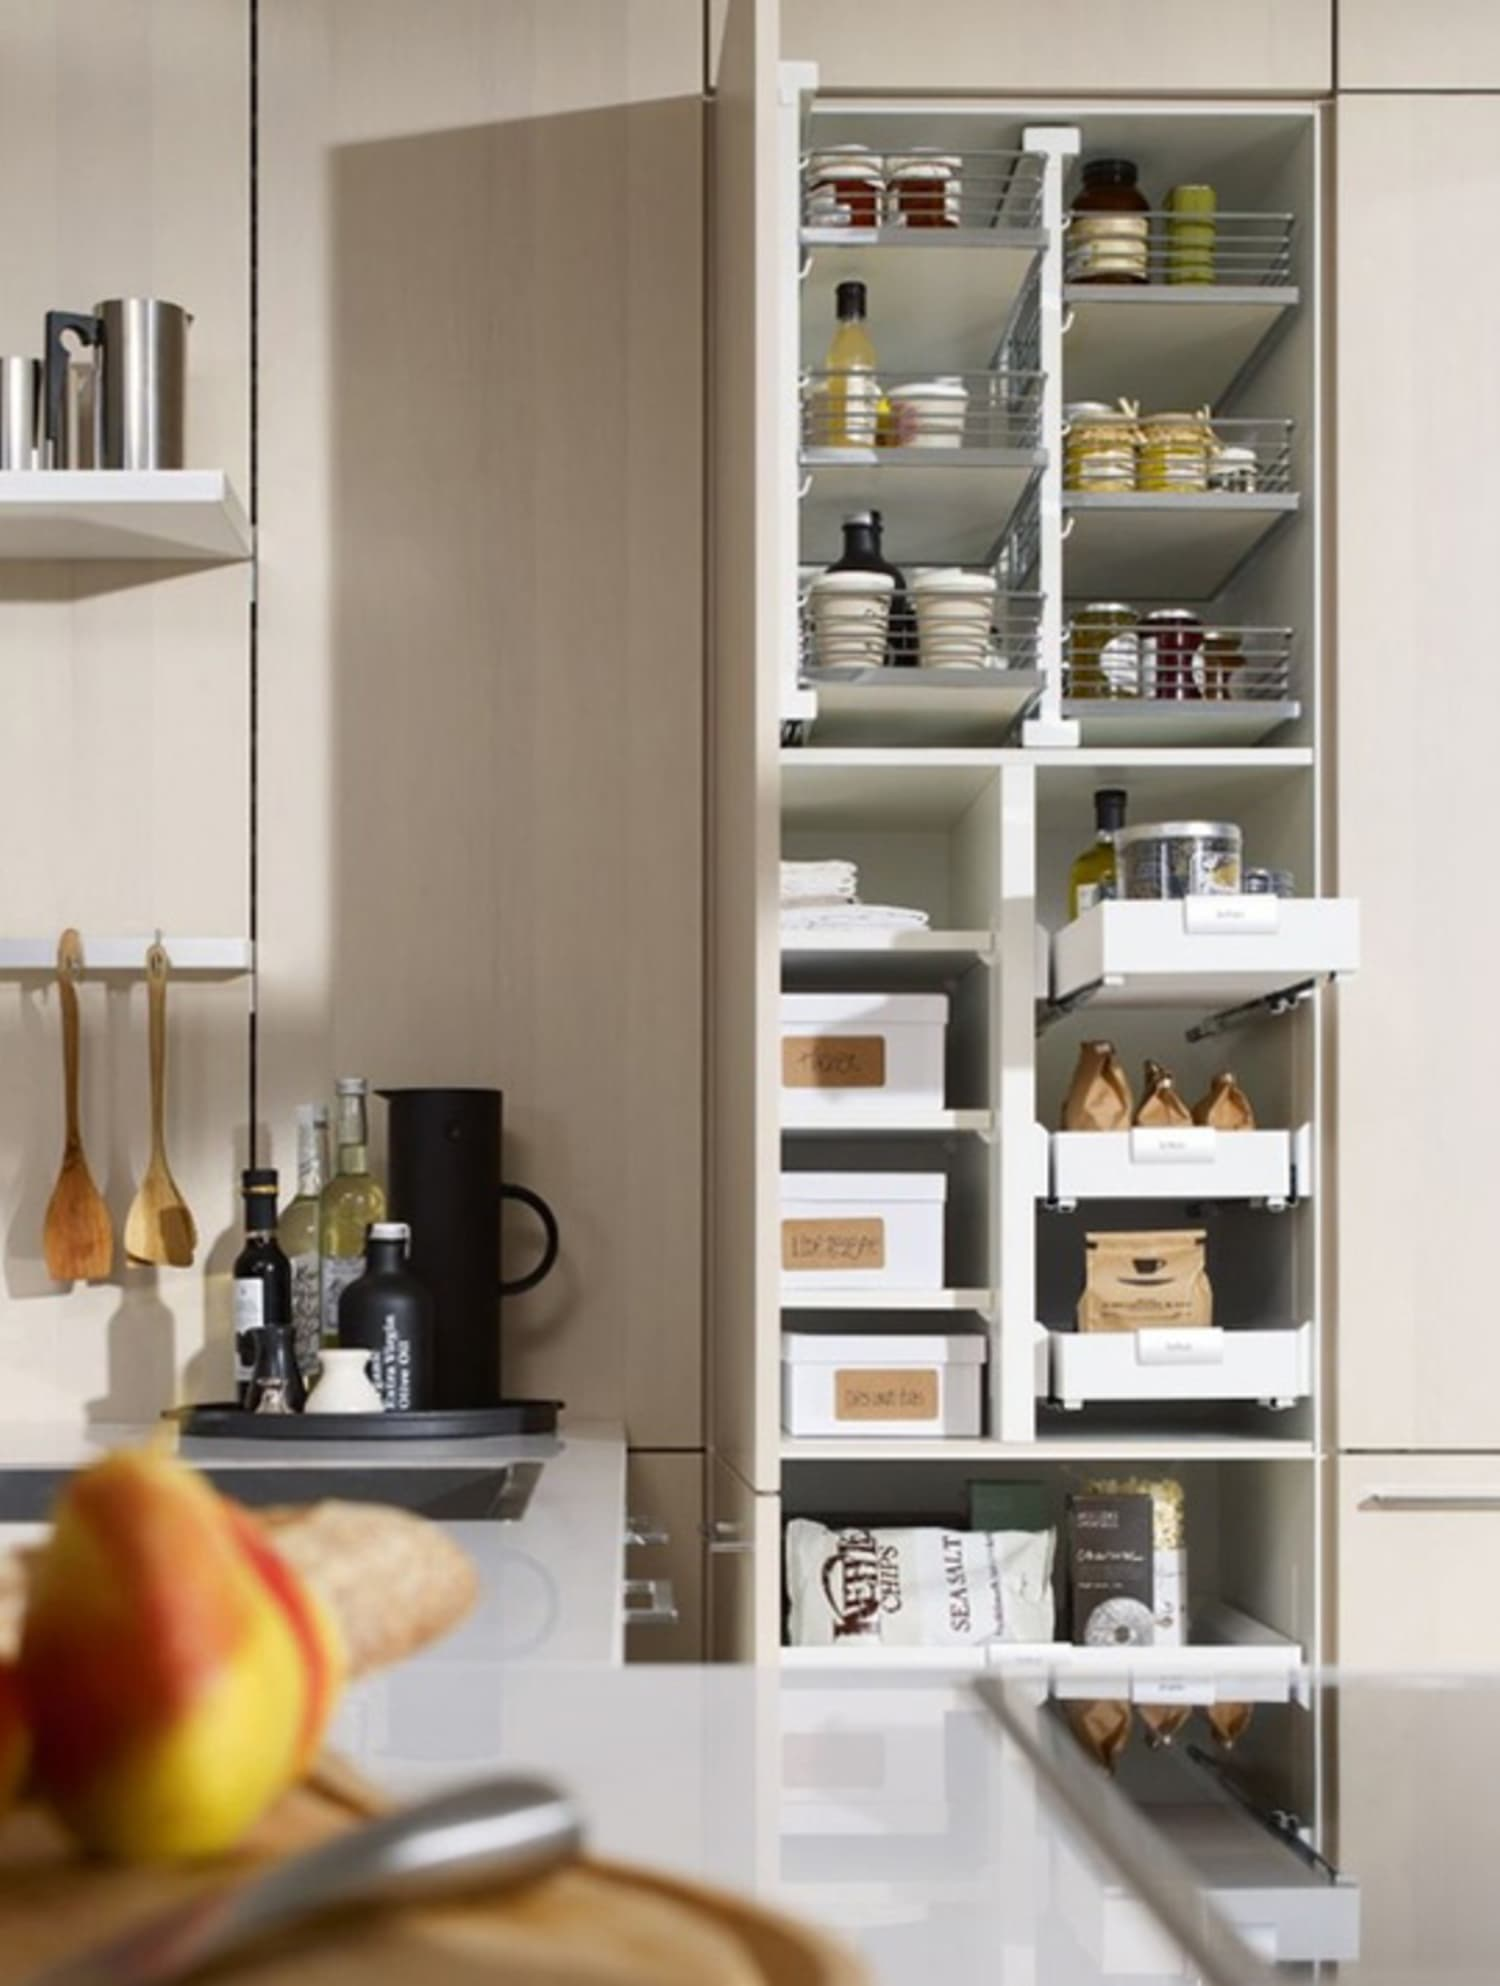 Where to Buy Pull Out Cabinet Shelves and Drawers | Kitchn